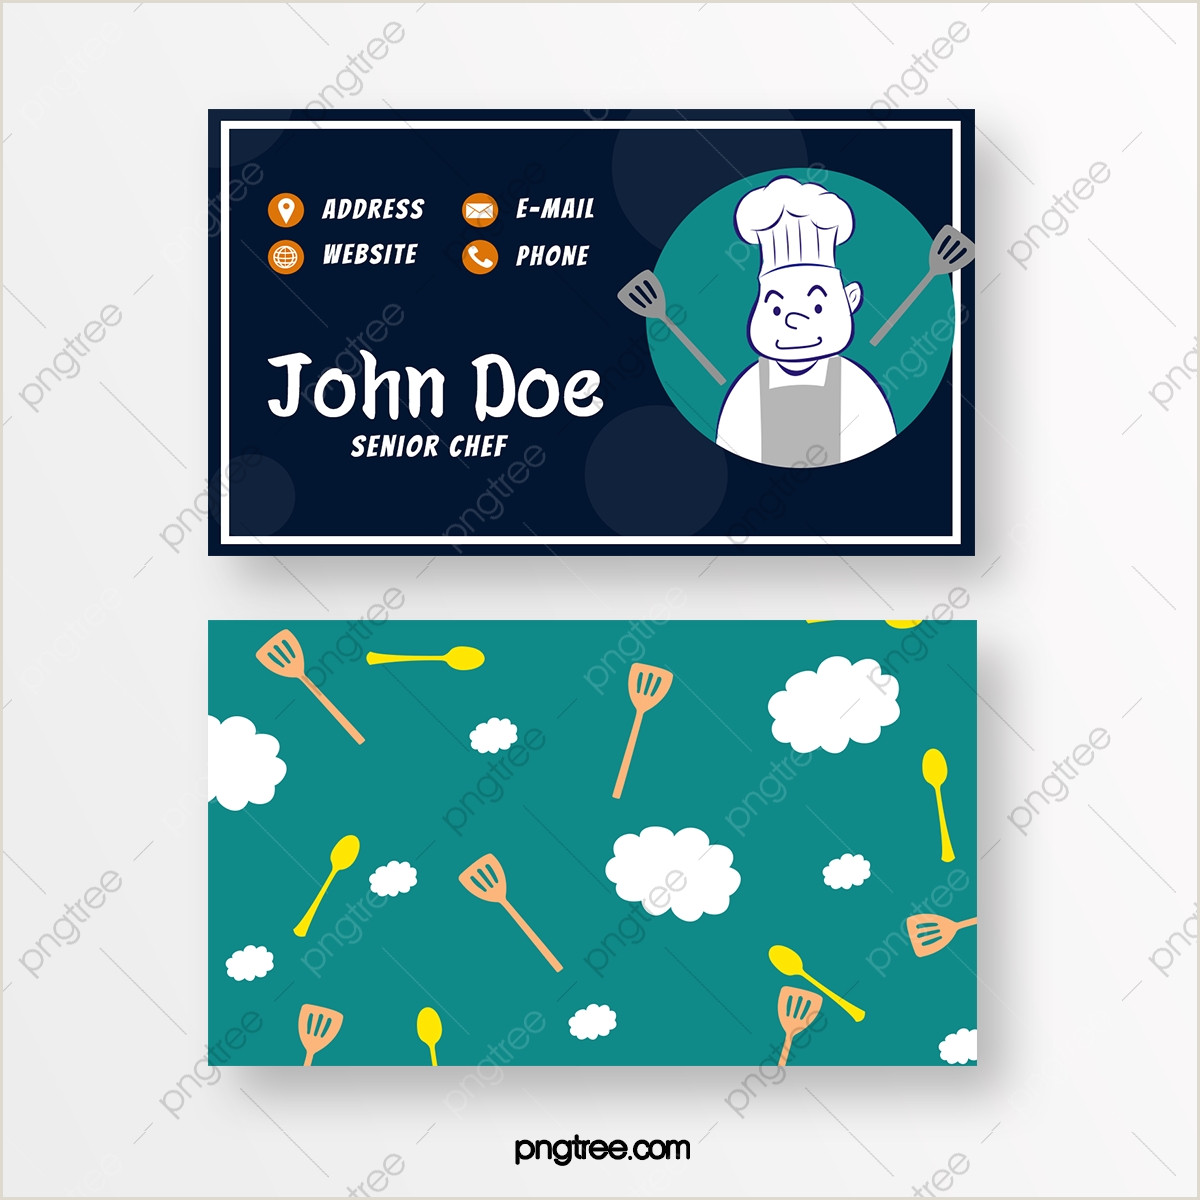 Unique Business Cards For Chefs Chef Business Card Png Vector And Psd Files